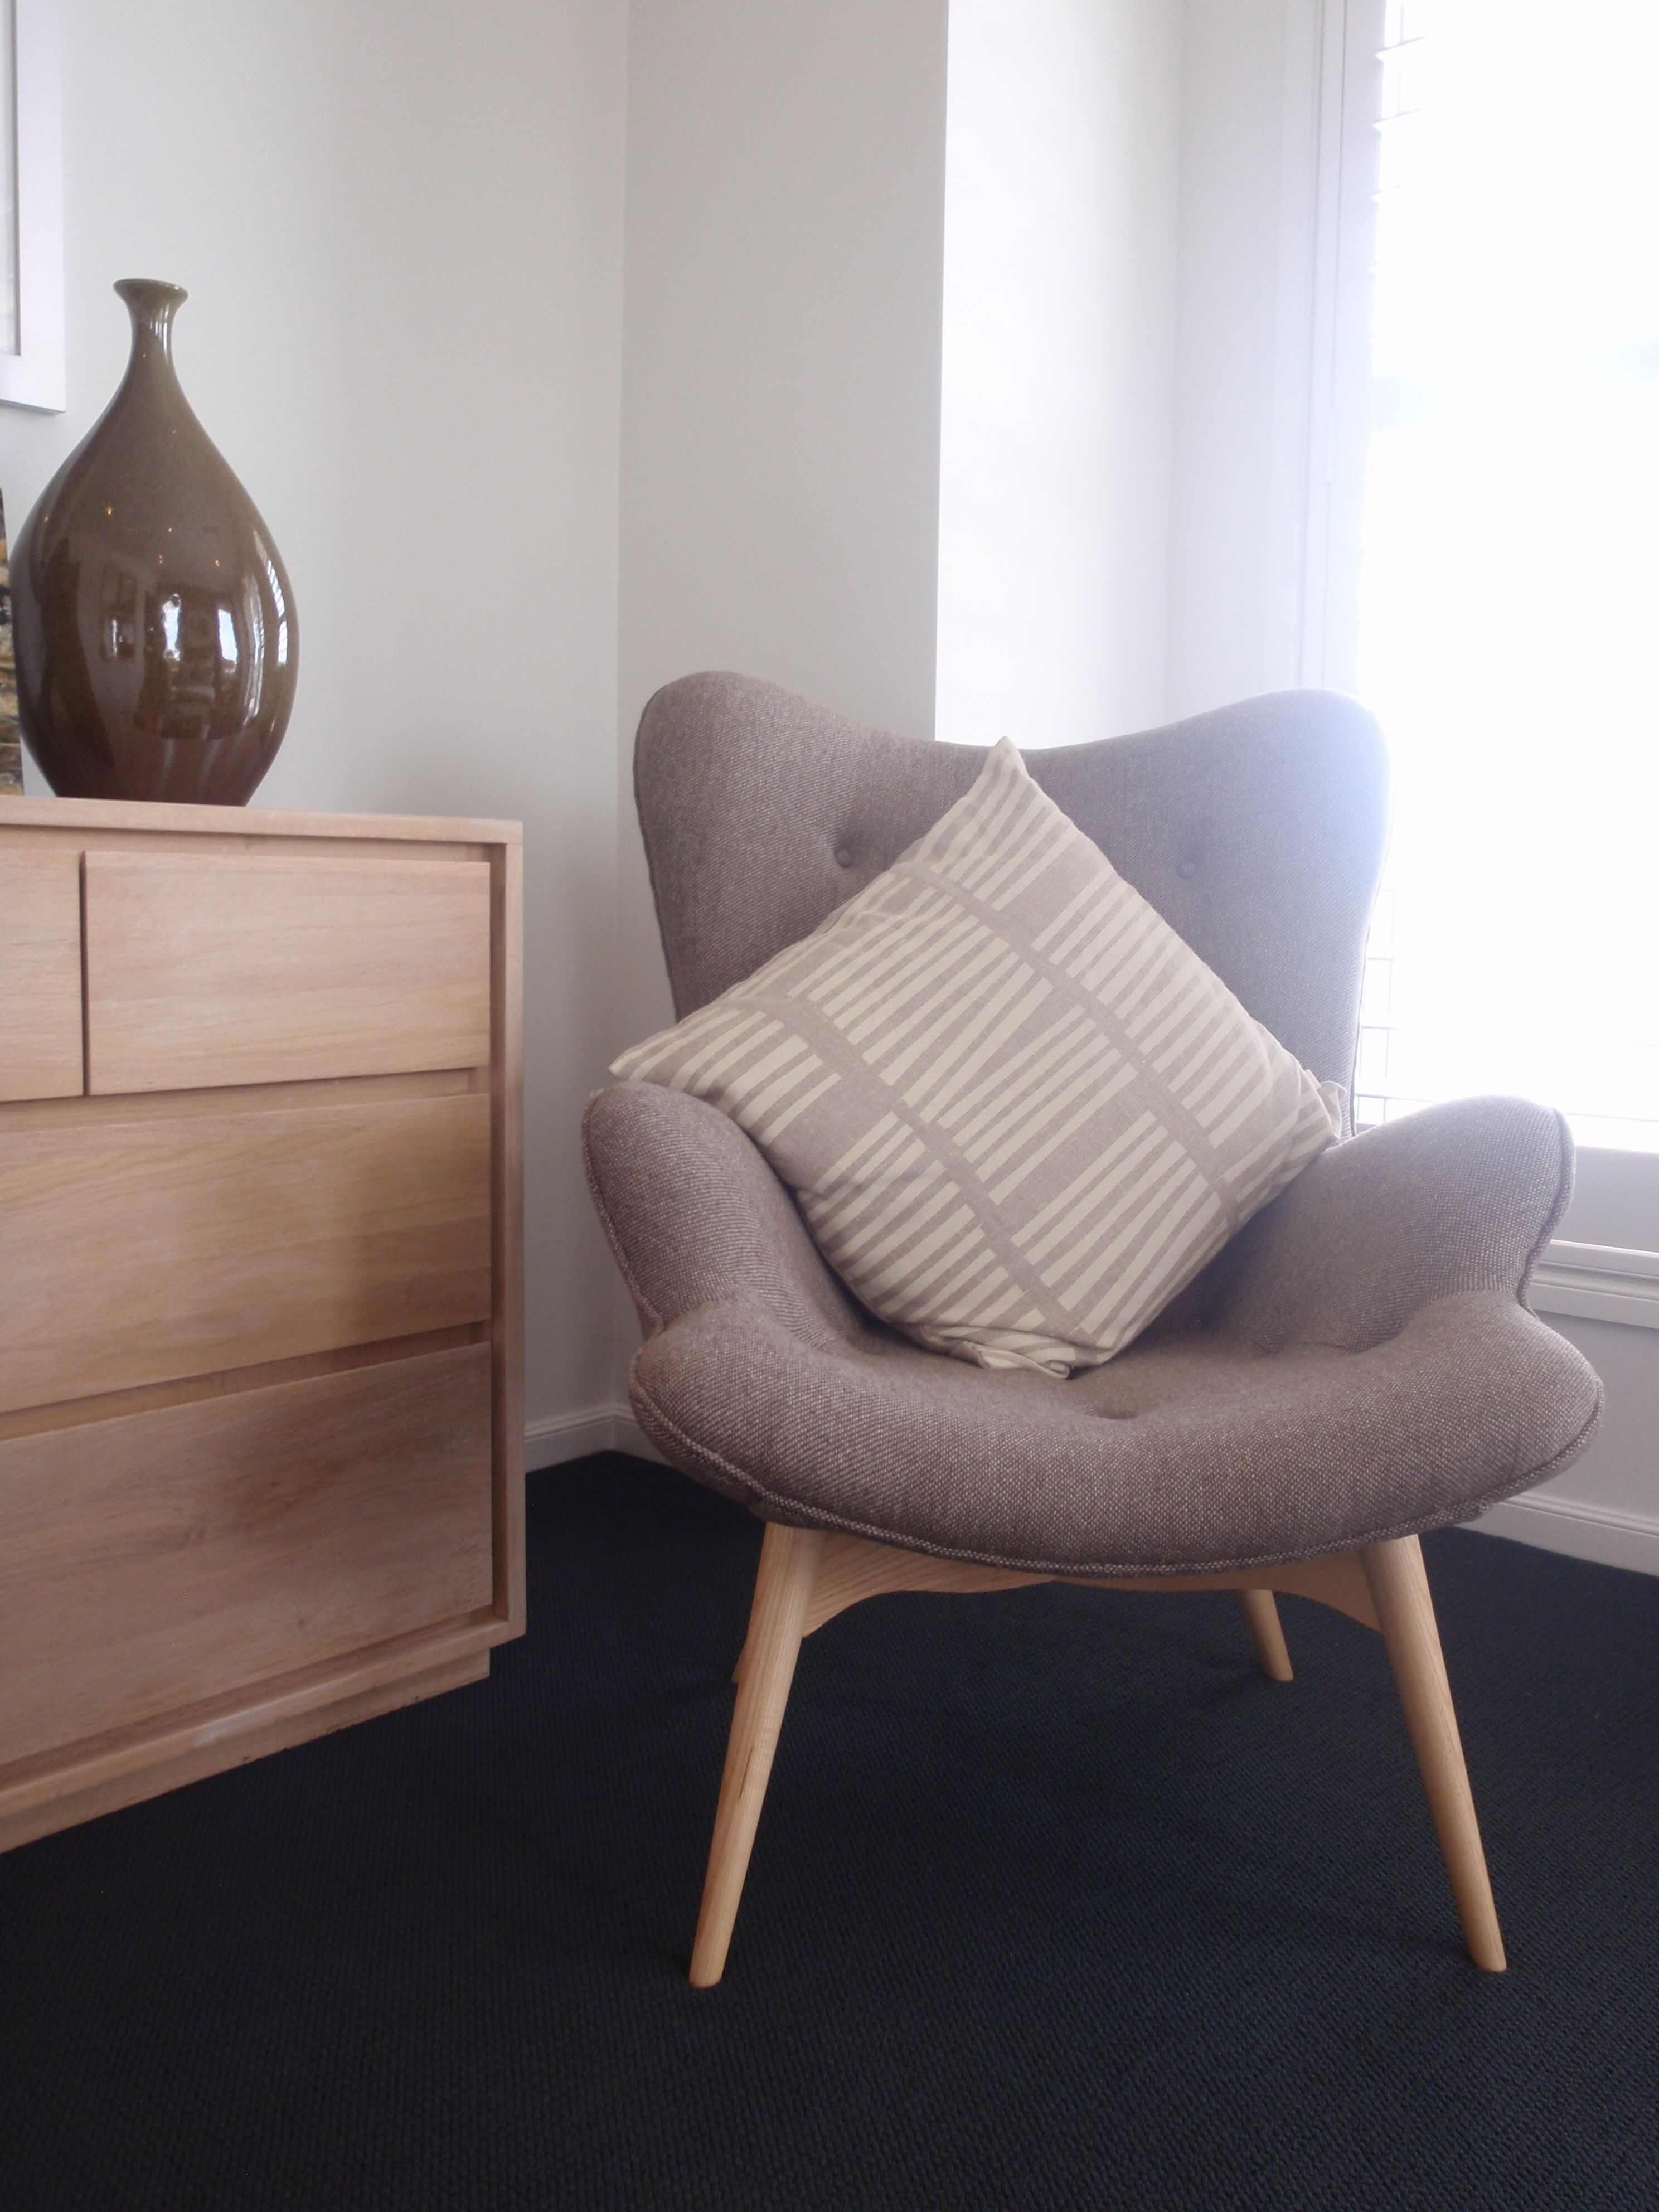 Bedroom Chairs For Small Spaces